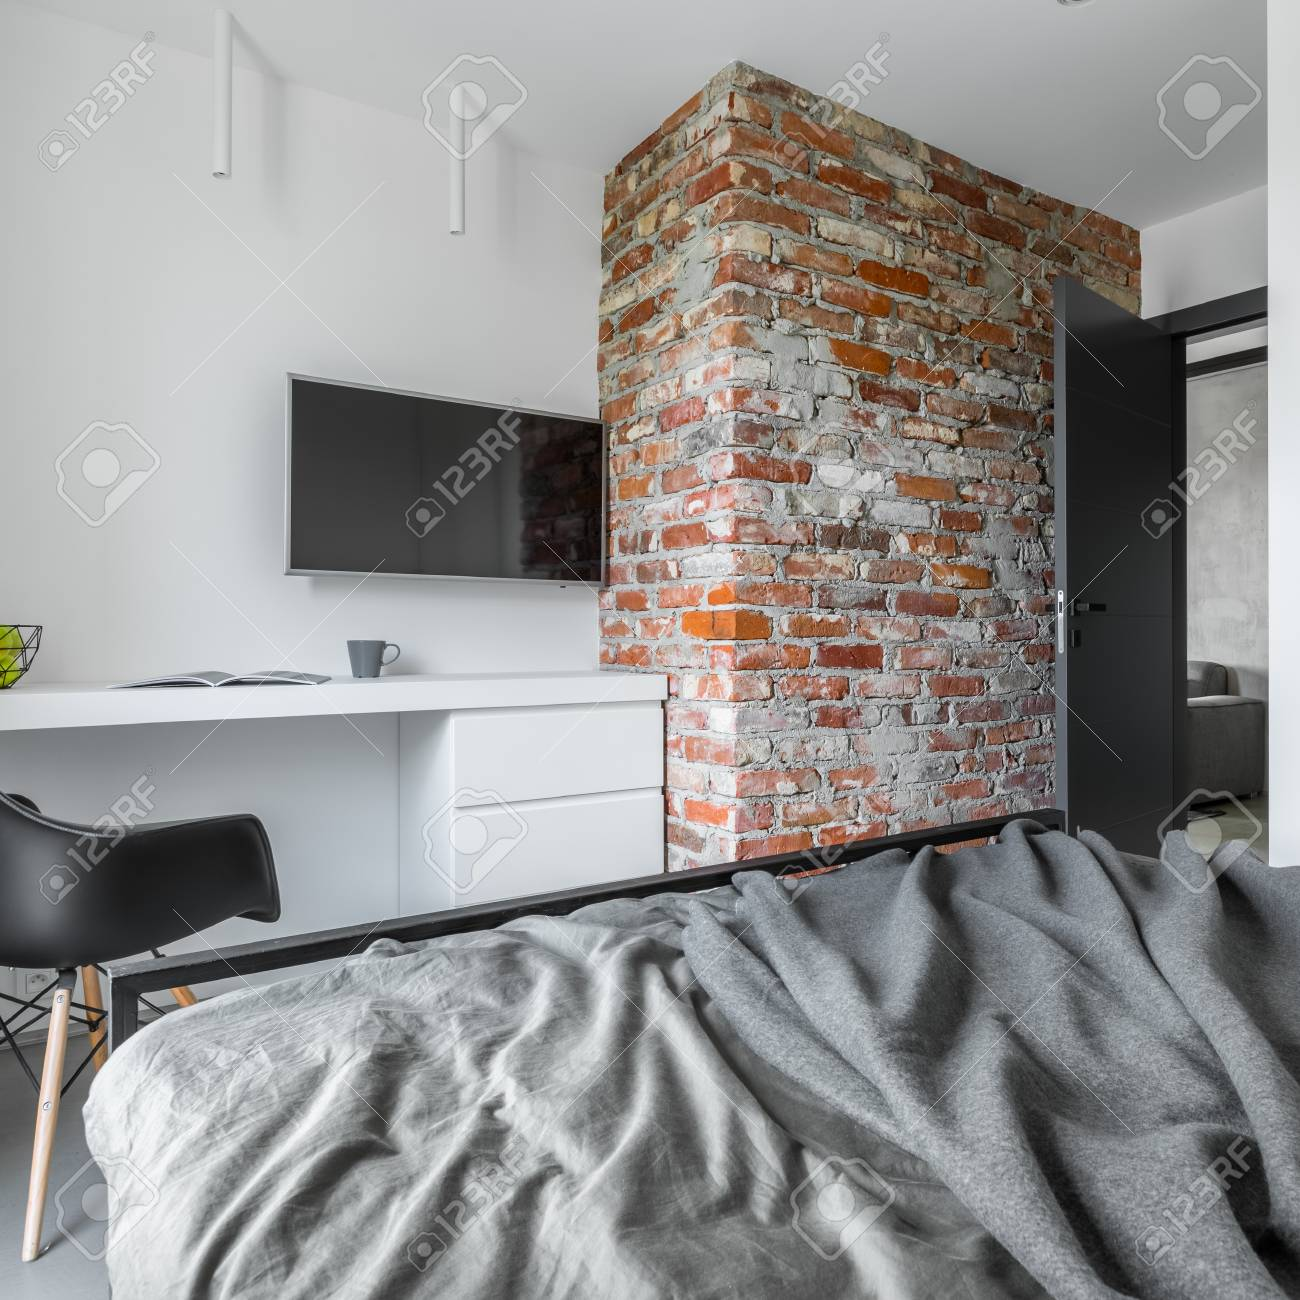 Bedroom with big bed, brick wall, desk and black chair